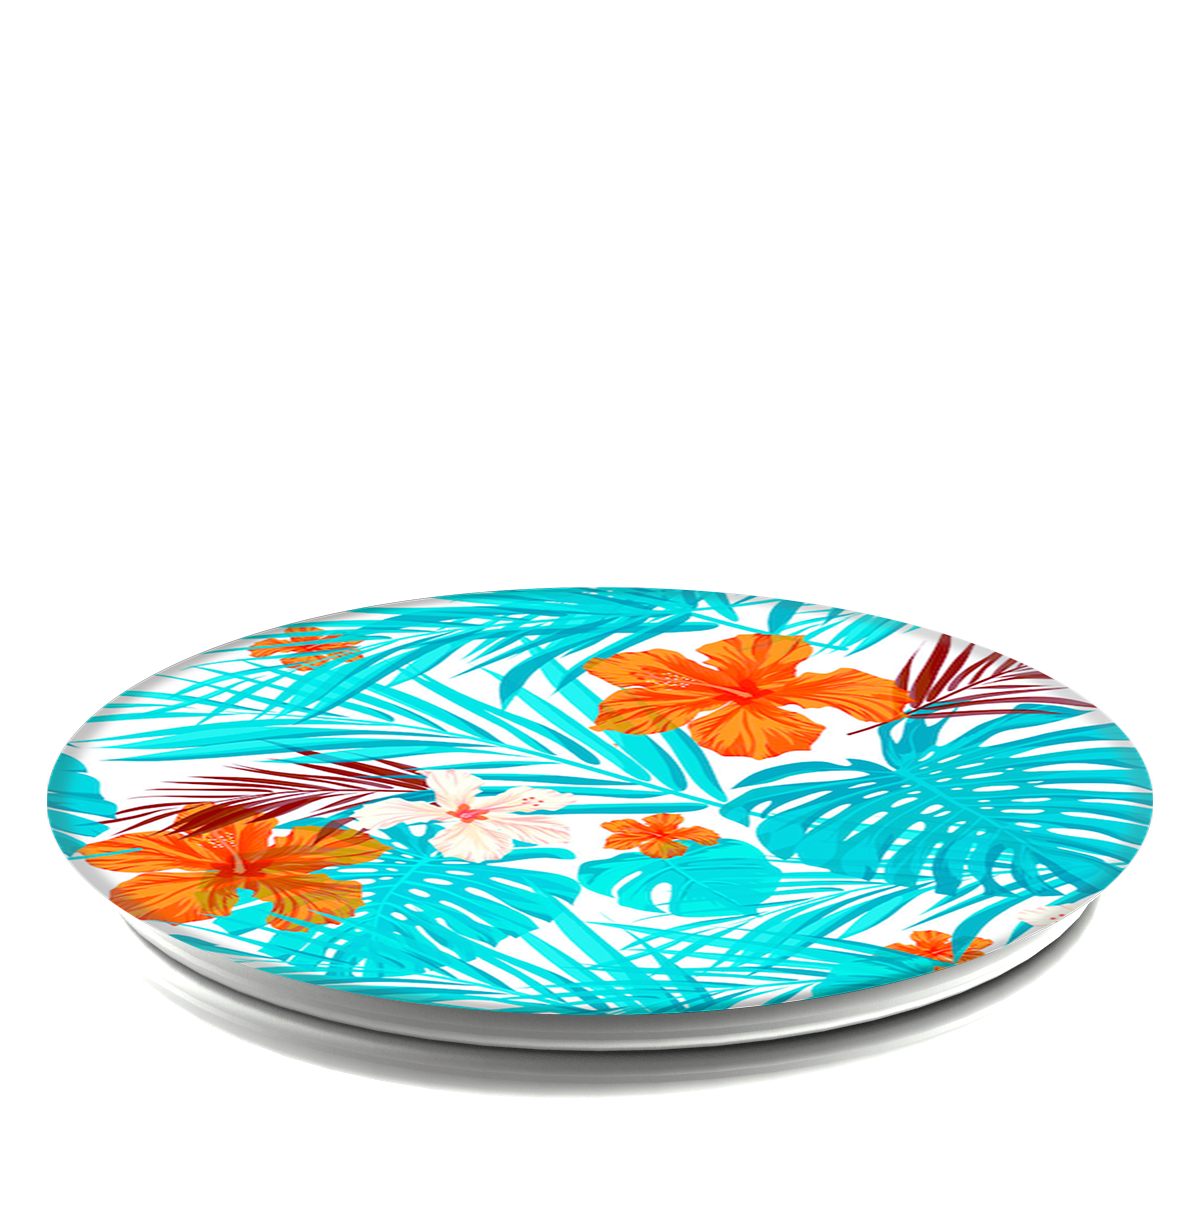 Tropical Hibiscus 熱帶芙蓉, PopSockets